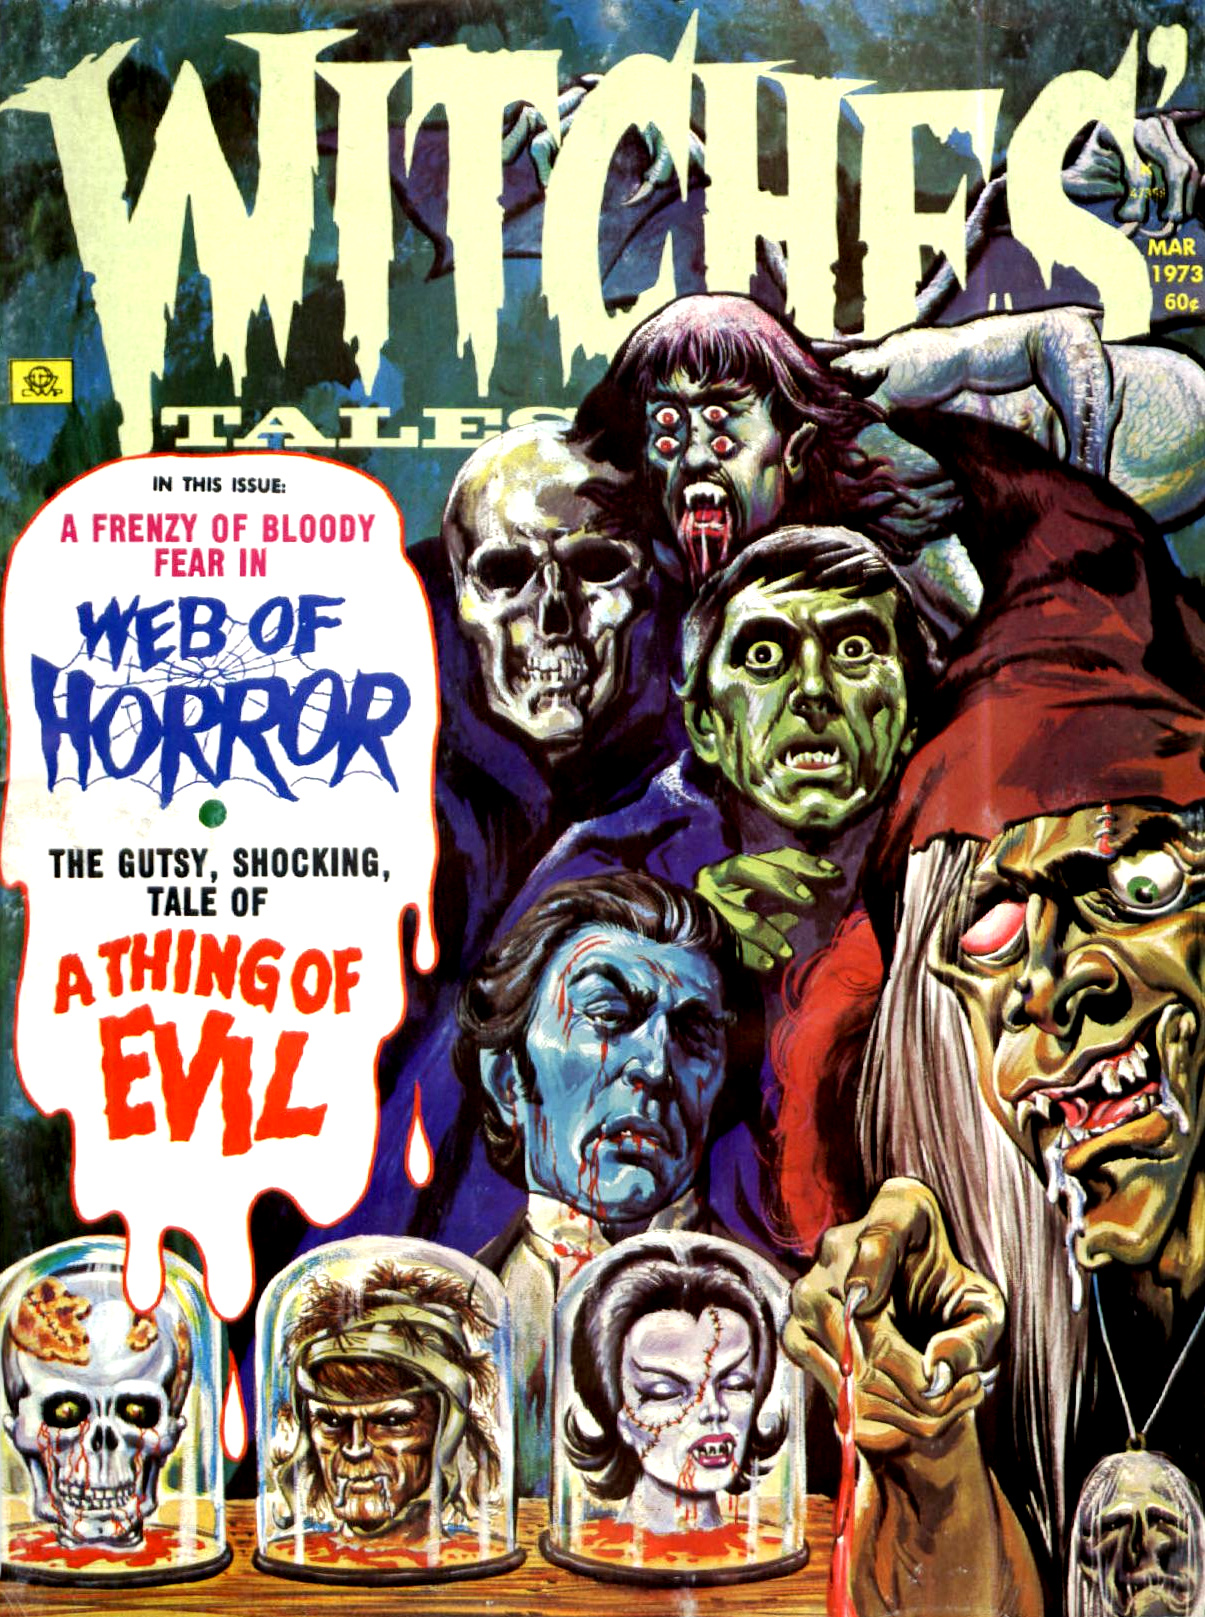 Witches' Tales Vol. 5 #2 (Eerie Publications 1973)